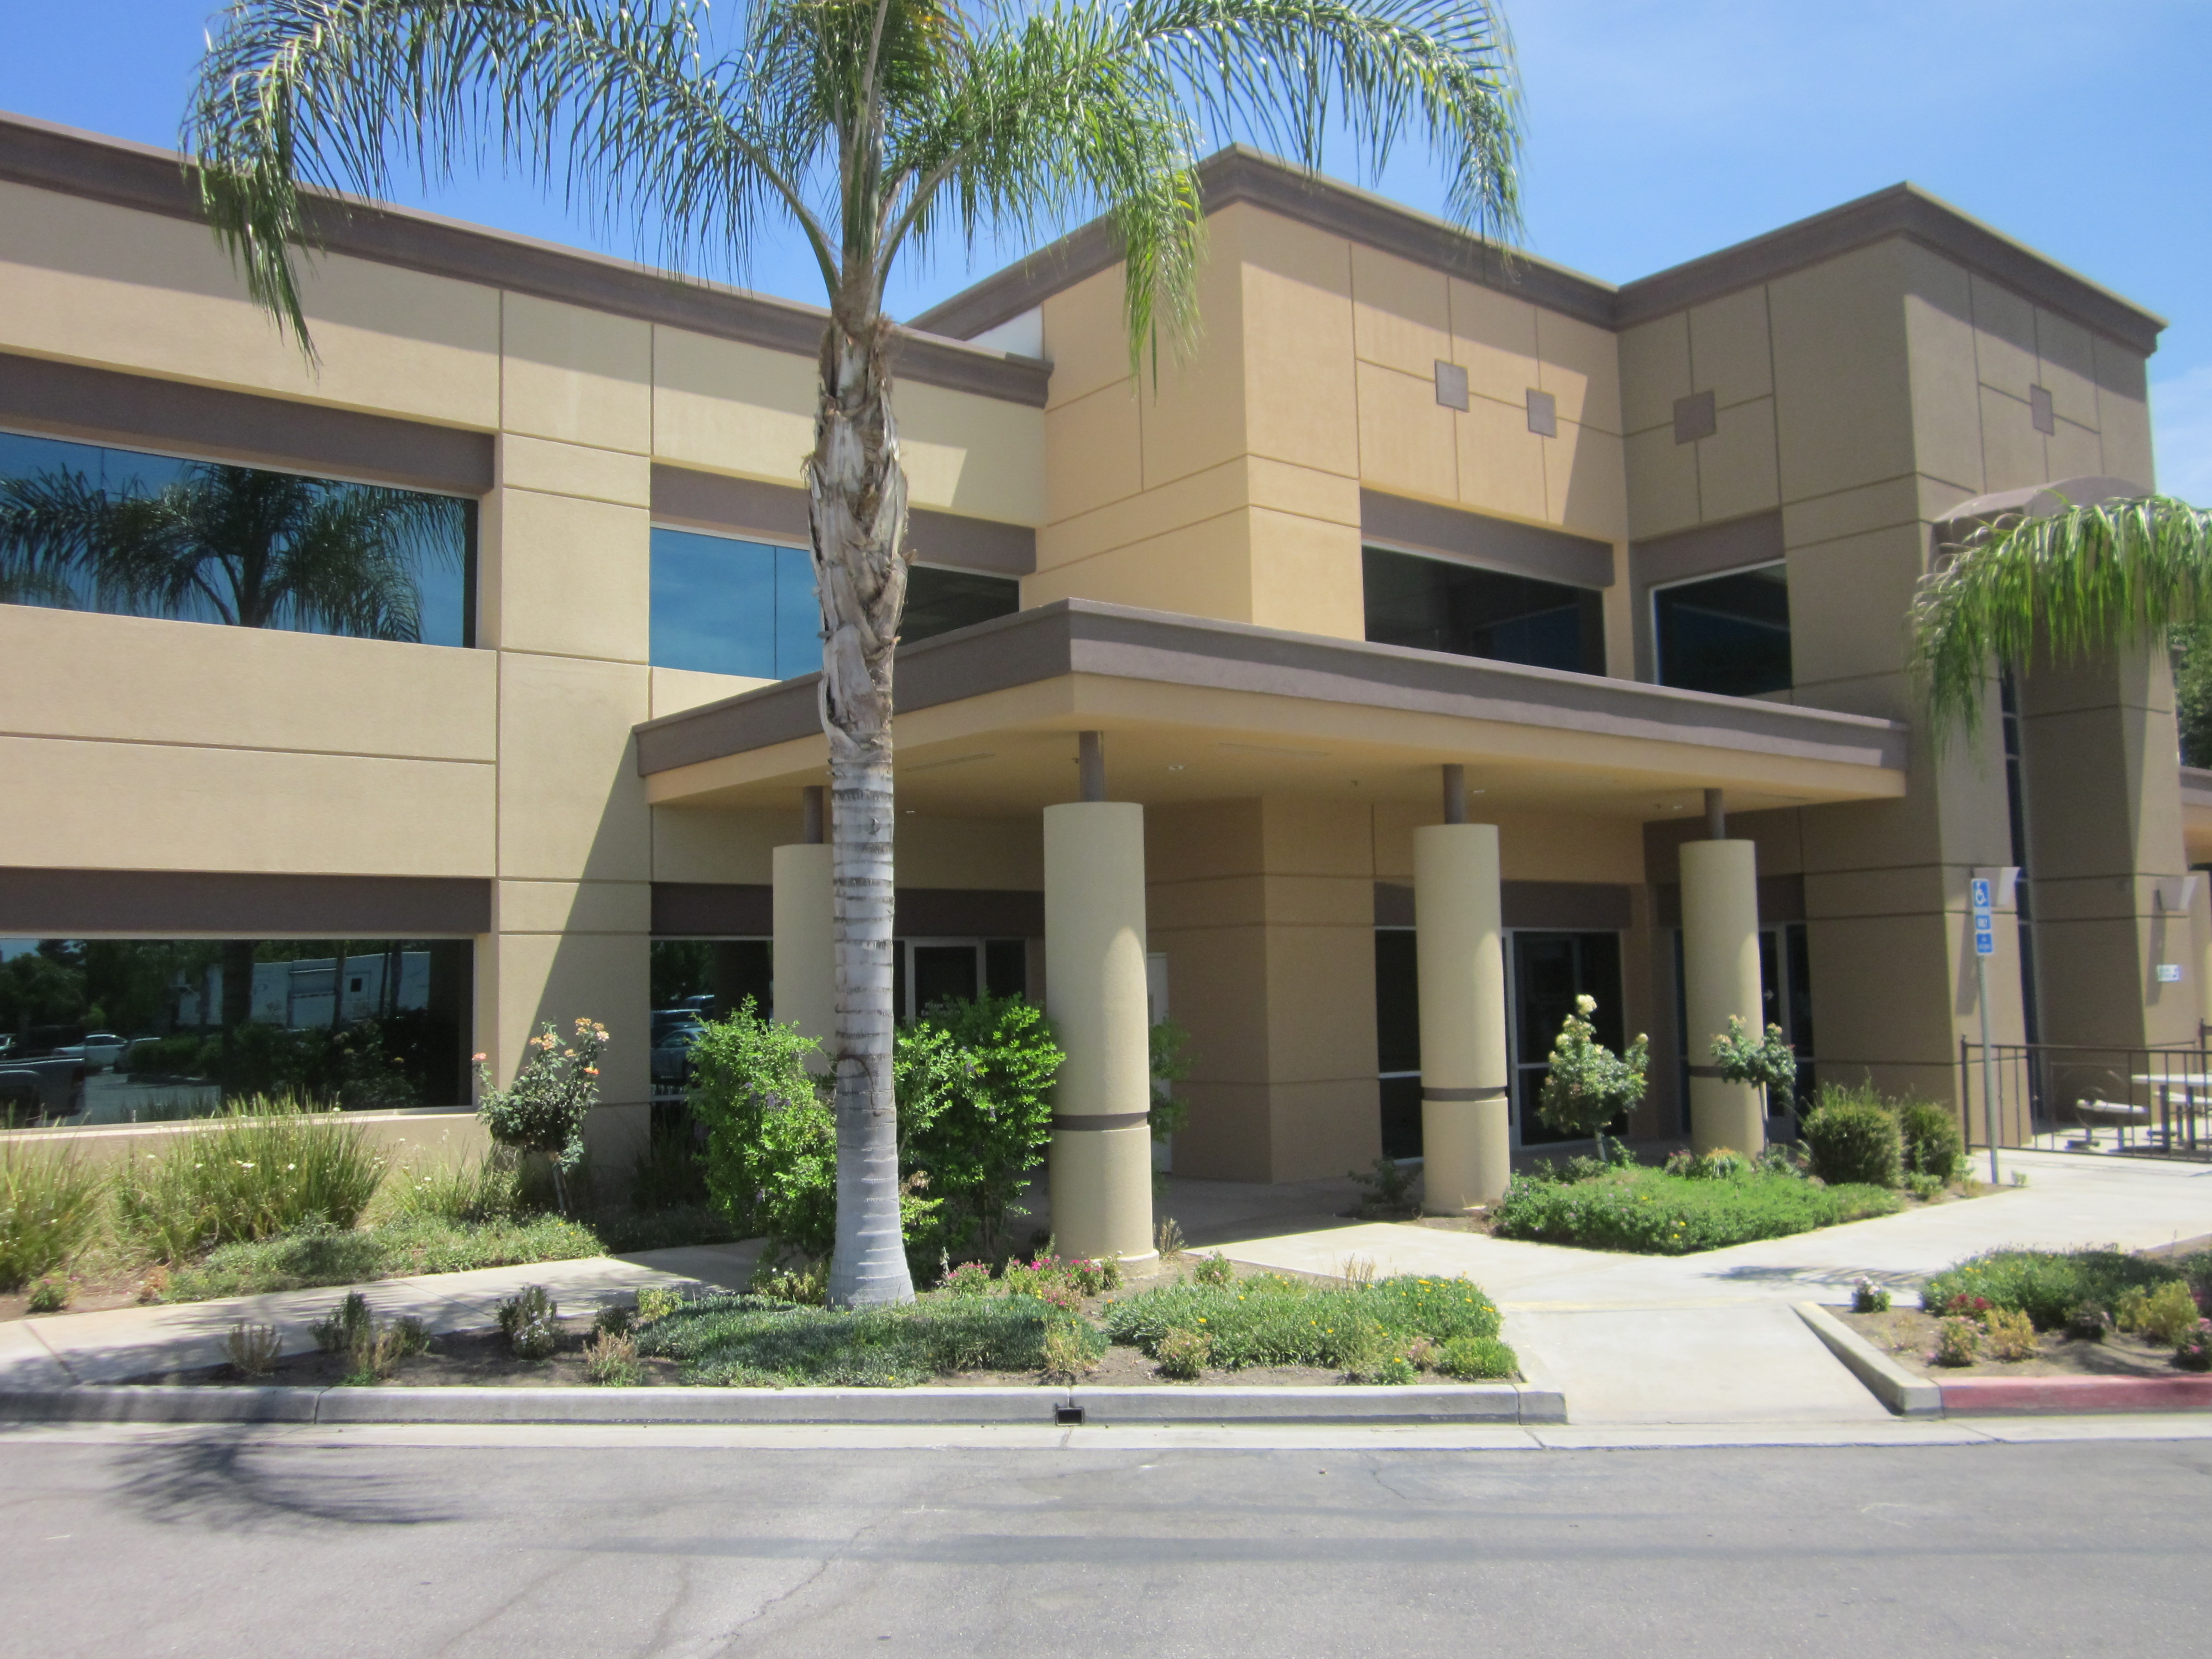 Cypress Court Apartments